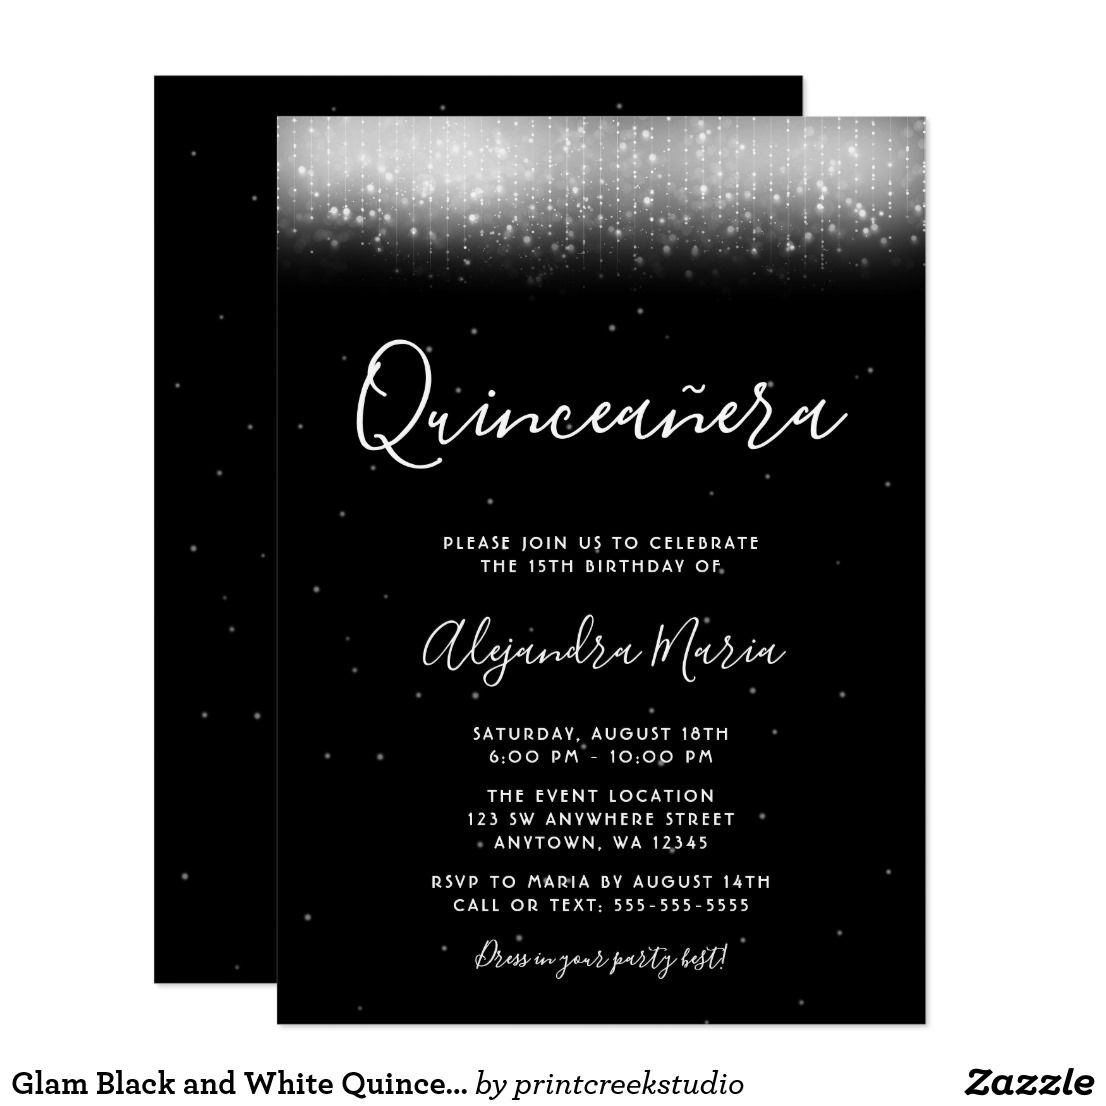 8827d0e228 Glam Black and White Quinceañera Invitation Modern black and white  Quinceañera invitations featuring trendy faux shimmer